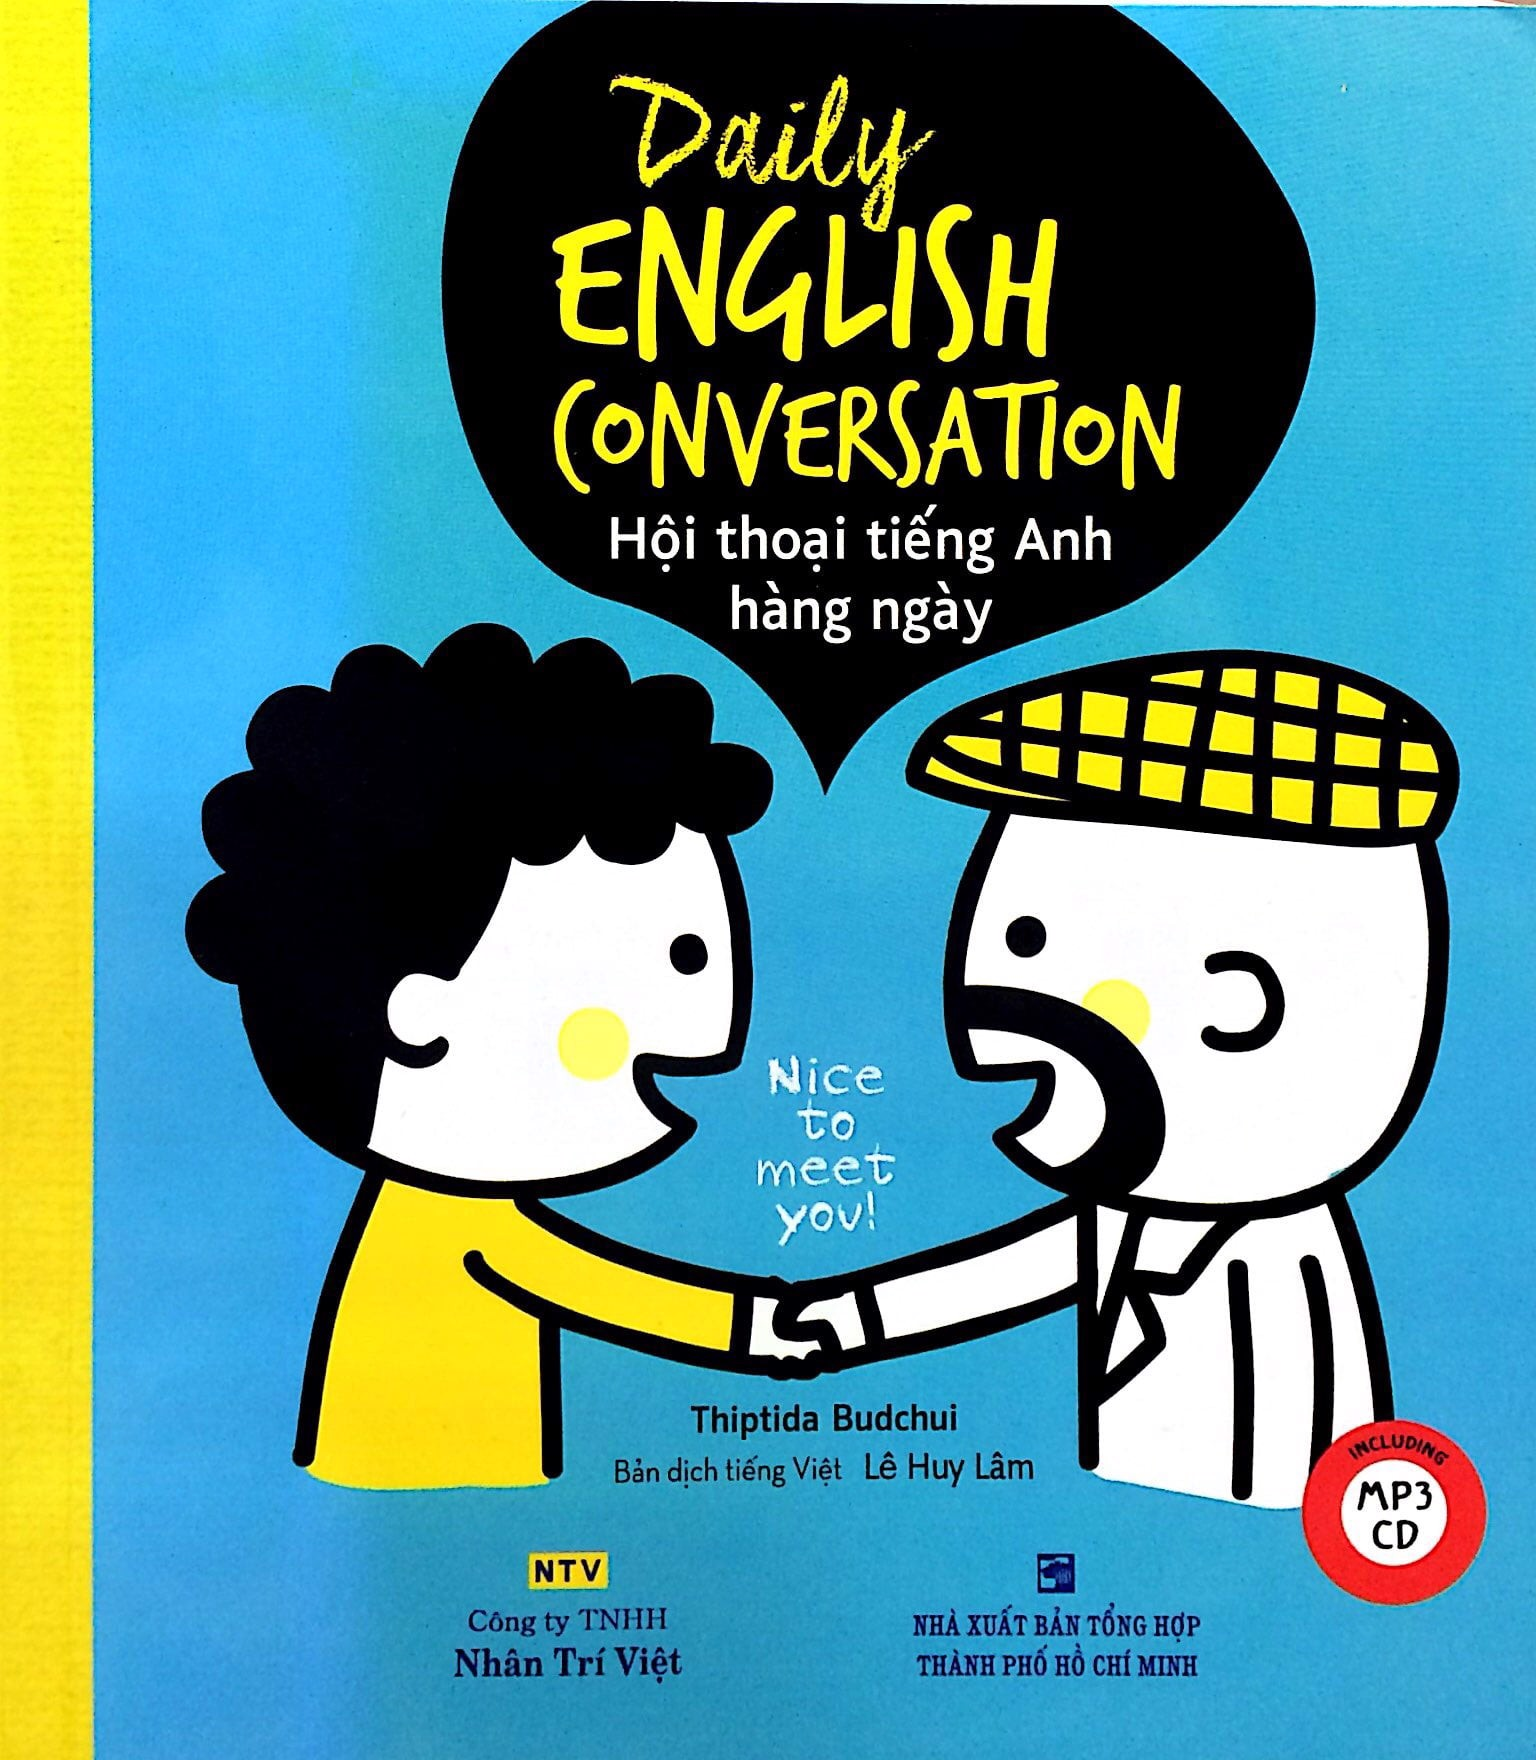 Daily English Conversation - Hội Thoại Tiếng Anh